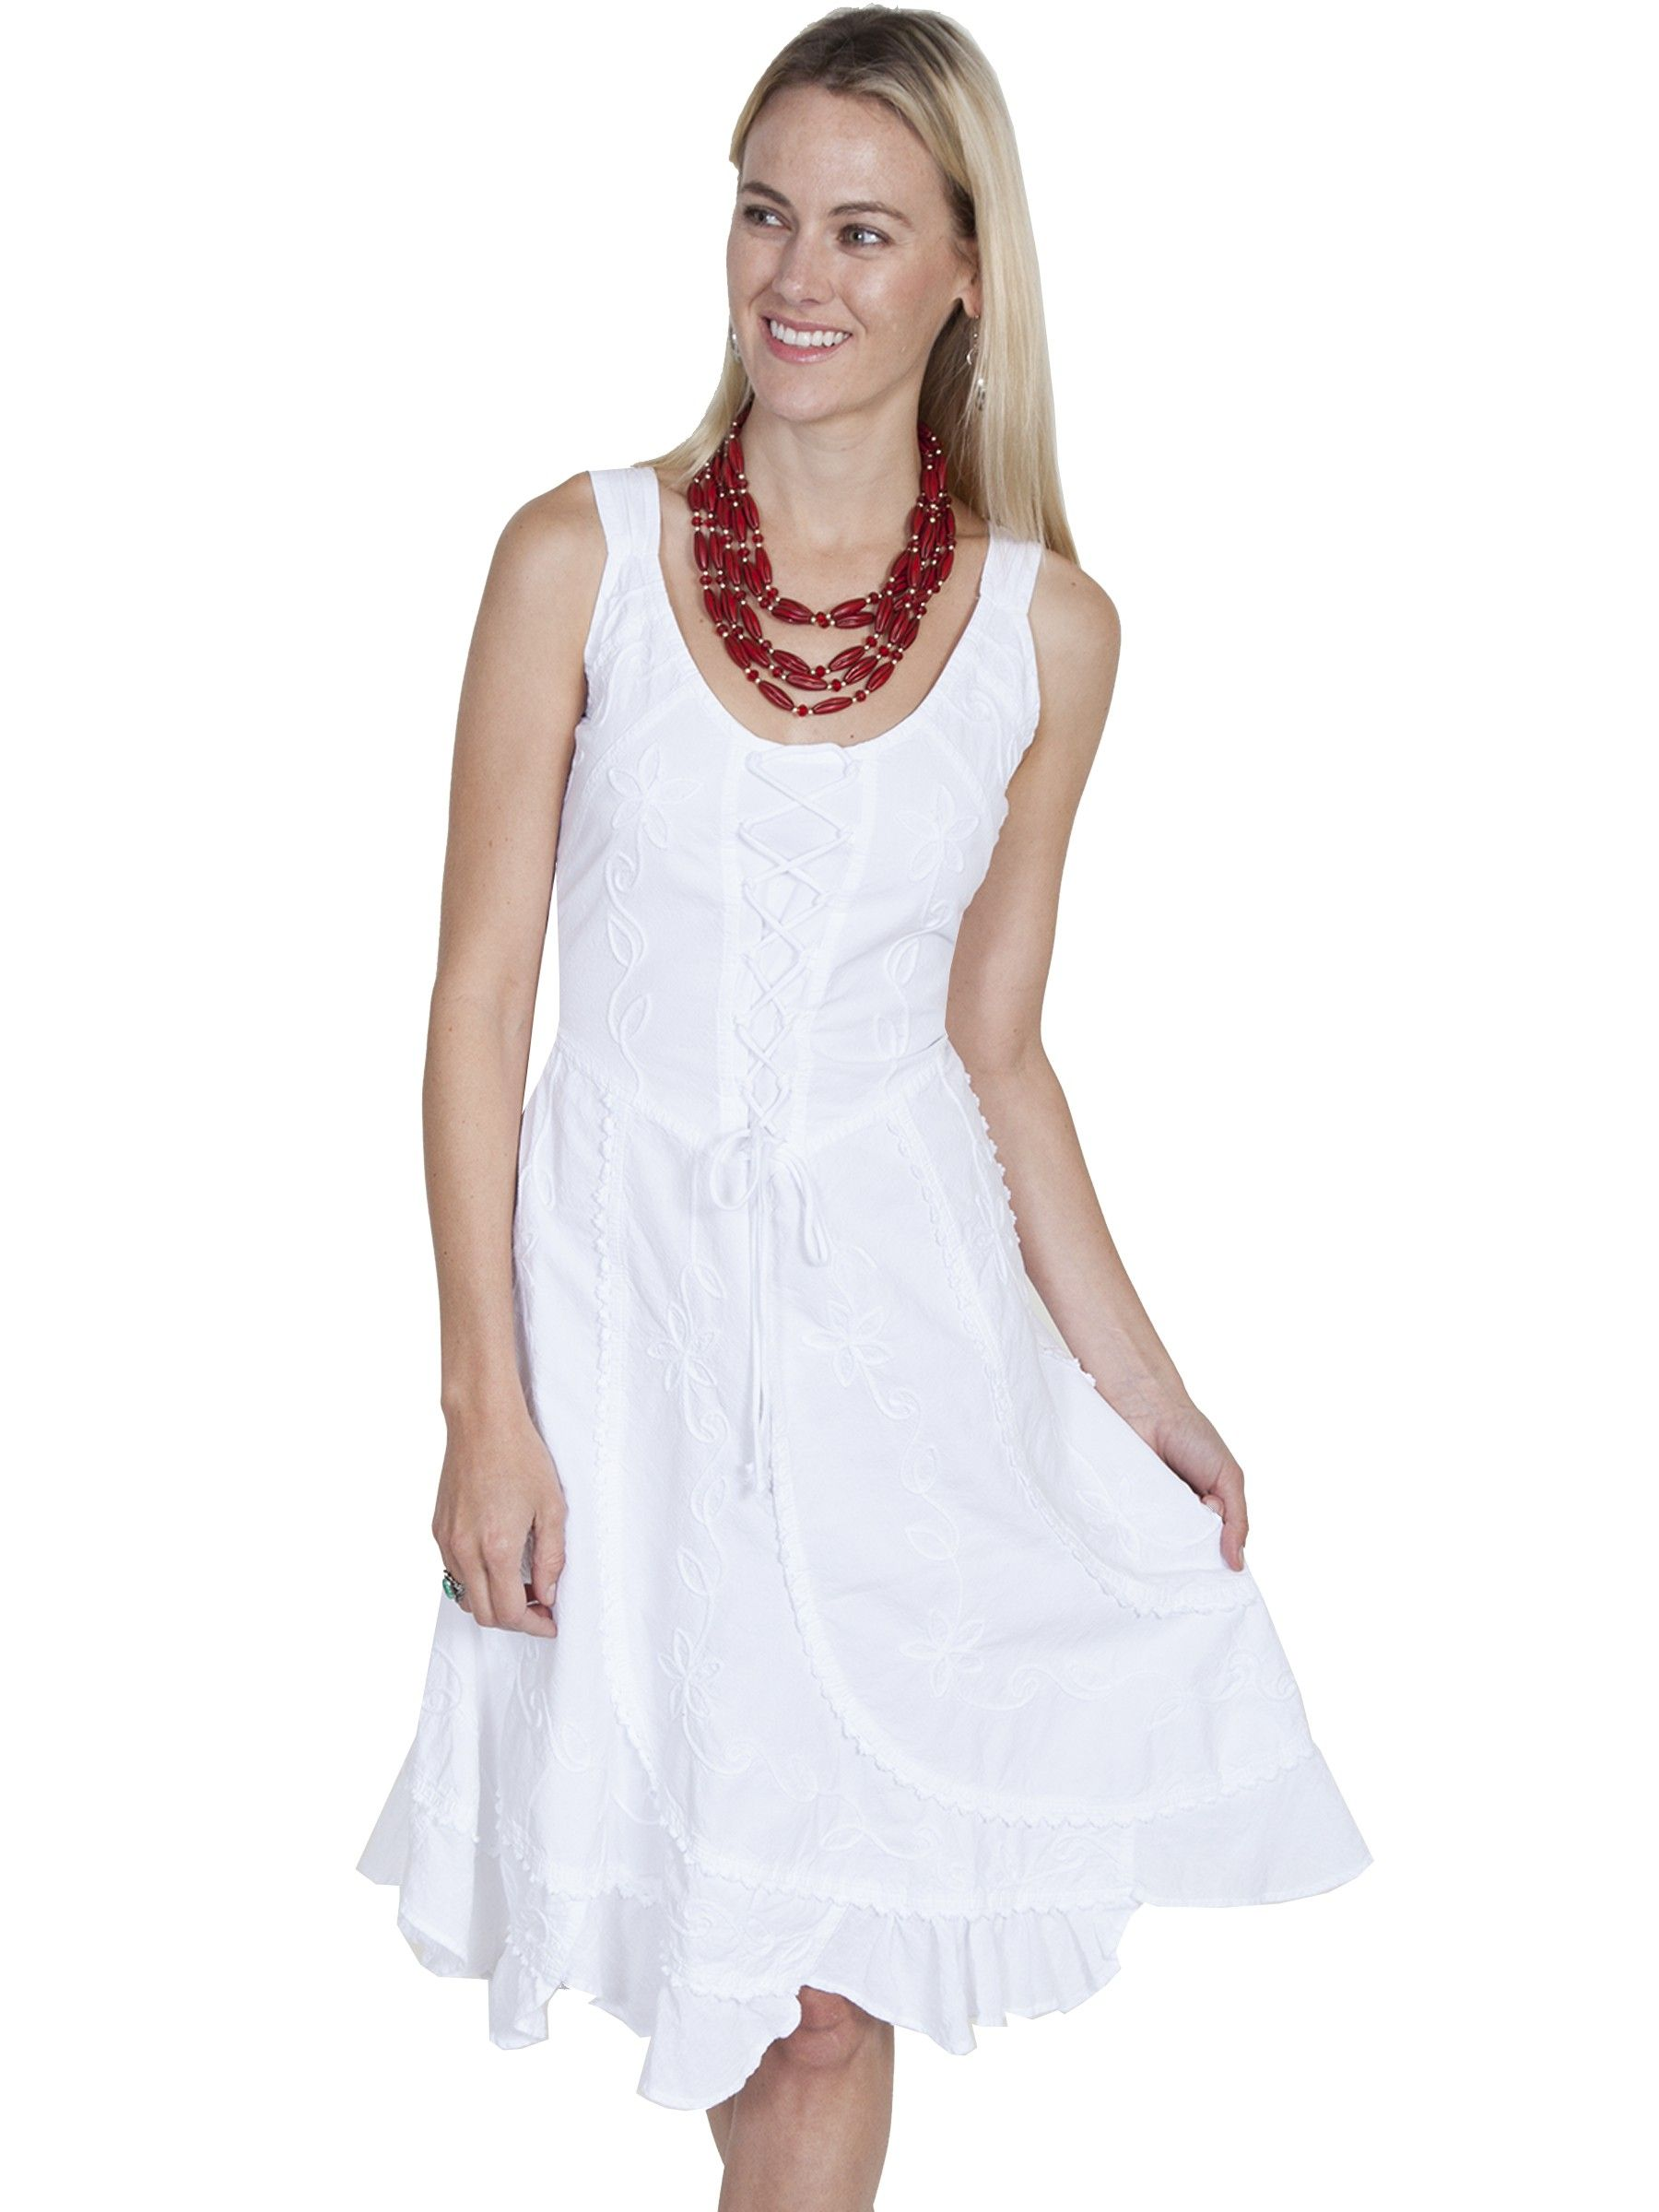 Western Romance Saloon Dress In White Sold Out Western Dresses For Women Western Dresses Dresses [ 2400 x 1800 Pixel ]